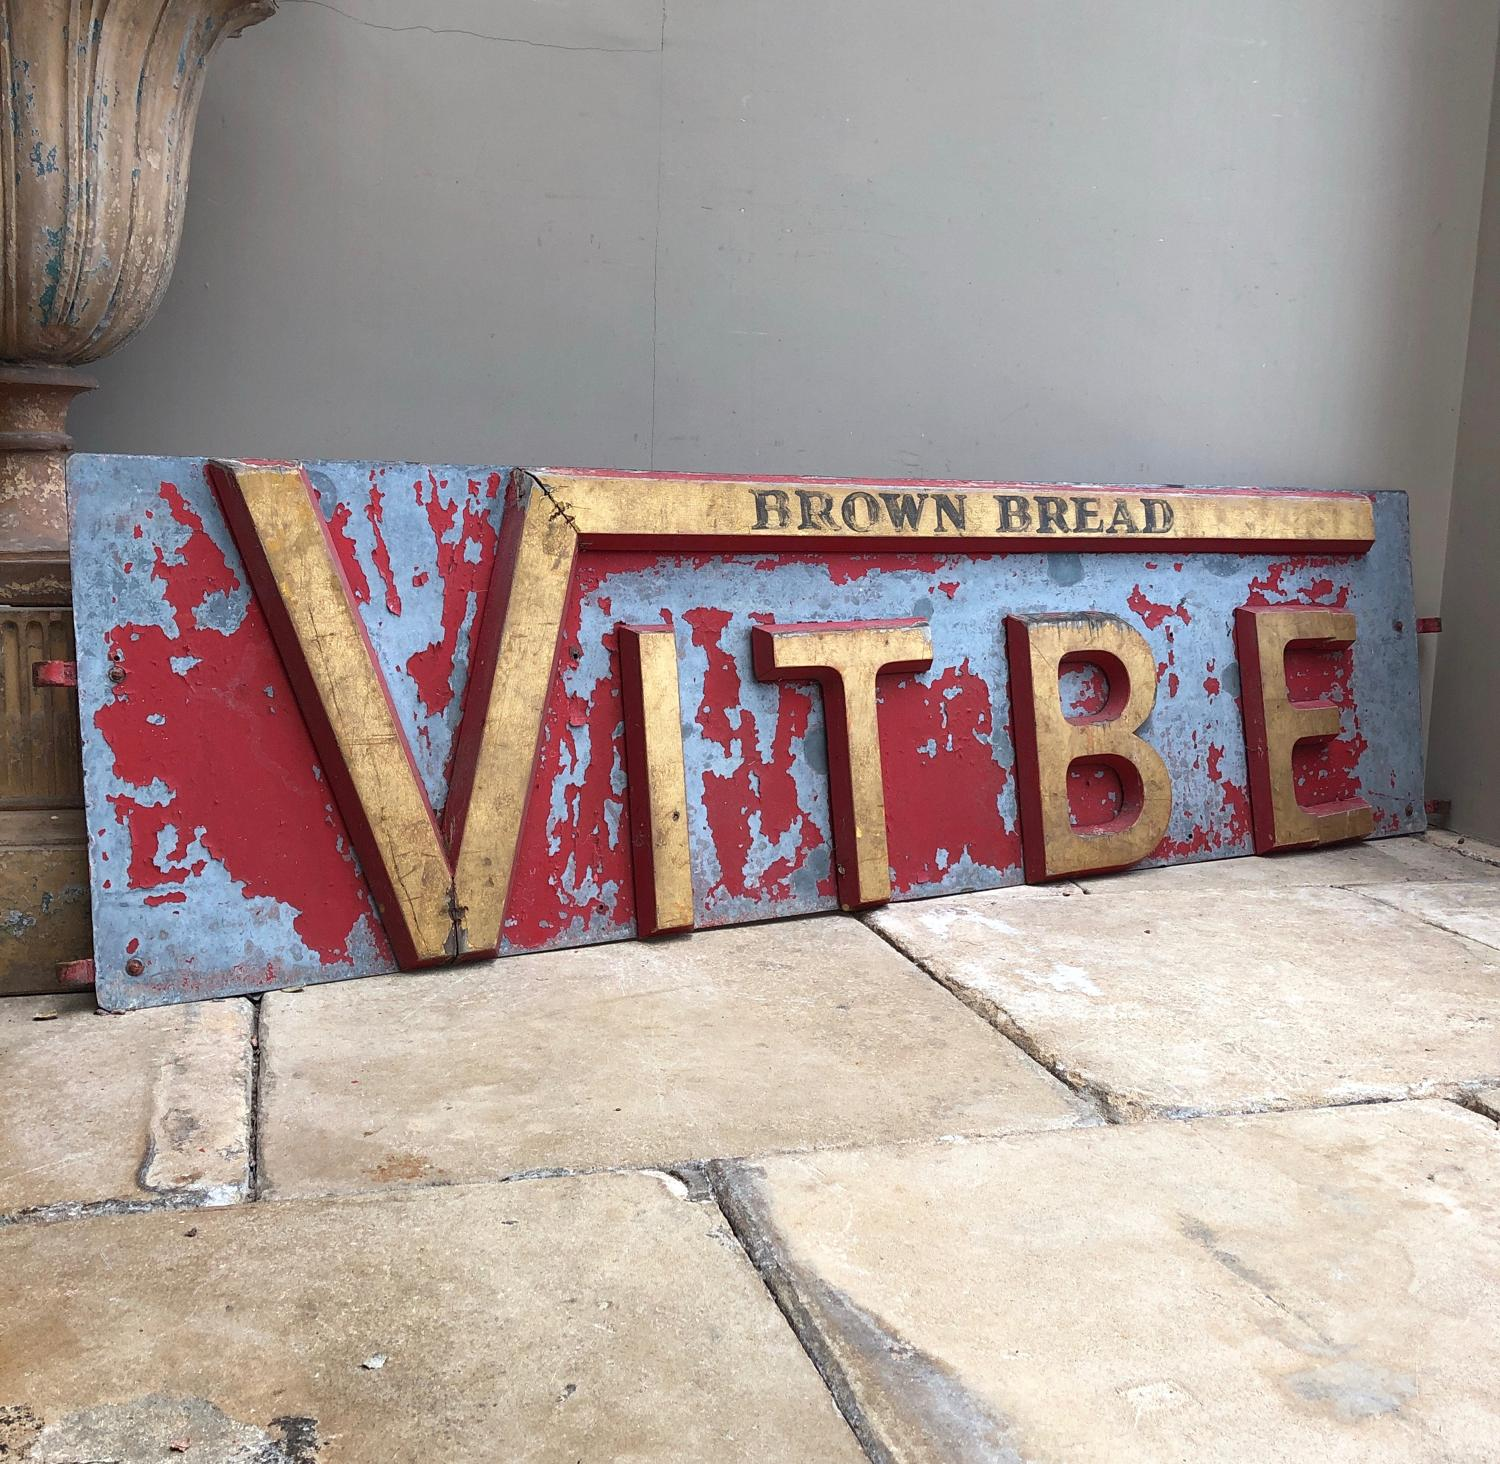 Rare Antique Vitbe Brown Bread Sign with Wooden Letters